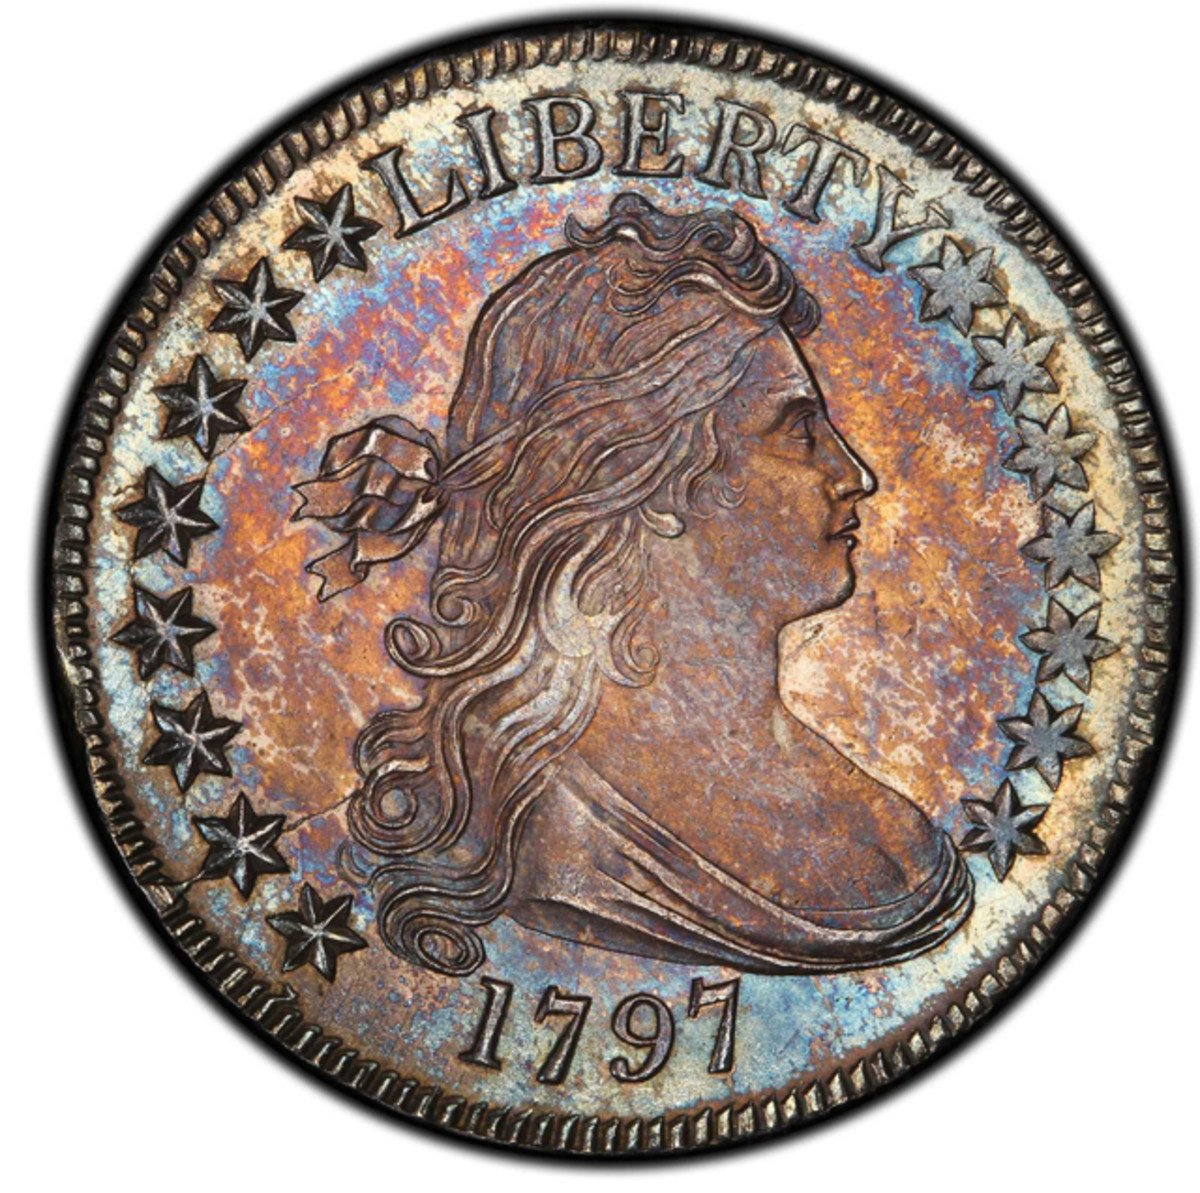 An MS-66 1797 Draped Bust half dollar also pulled in $1,527,500.